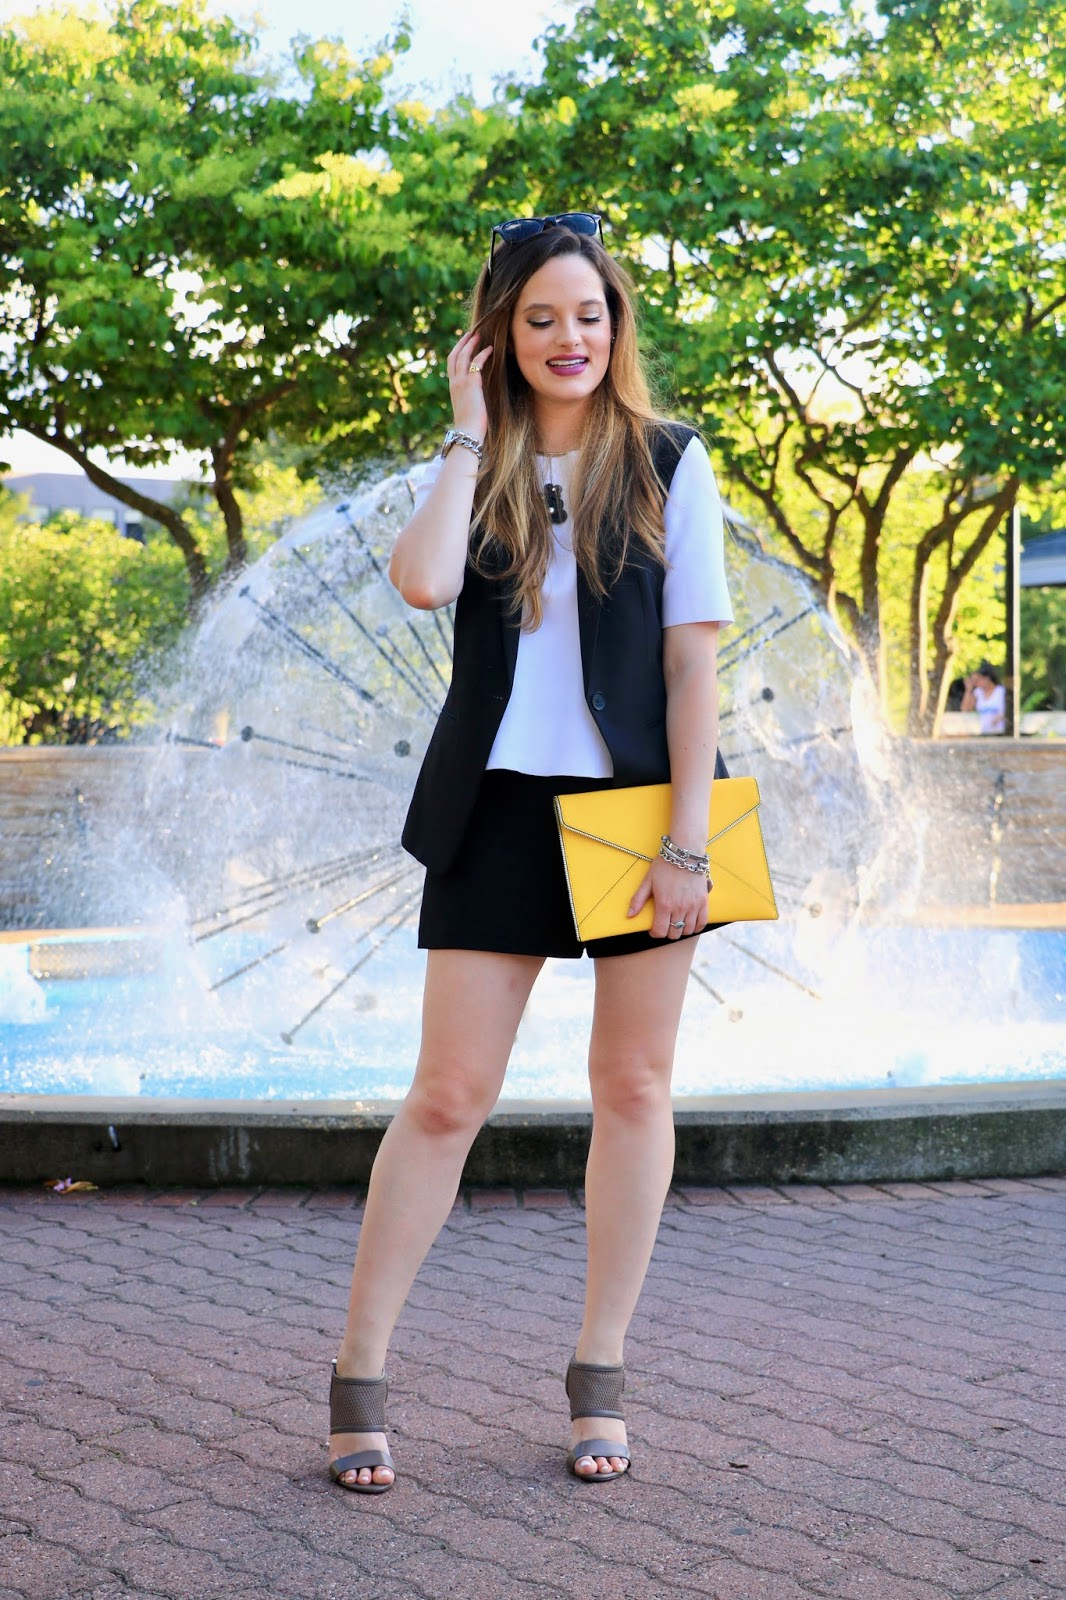 NYC fashion blogger Kathleen Harper of Kat's Fashion Fix wearing shorts with a vest for office style